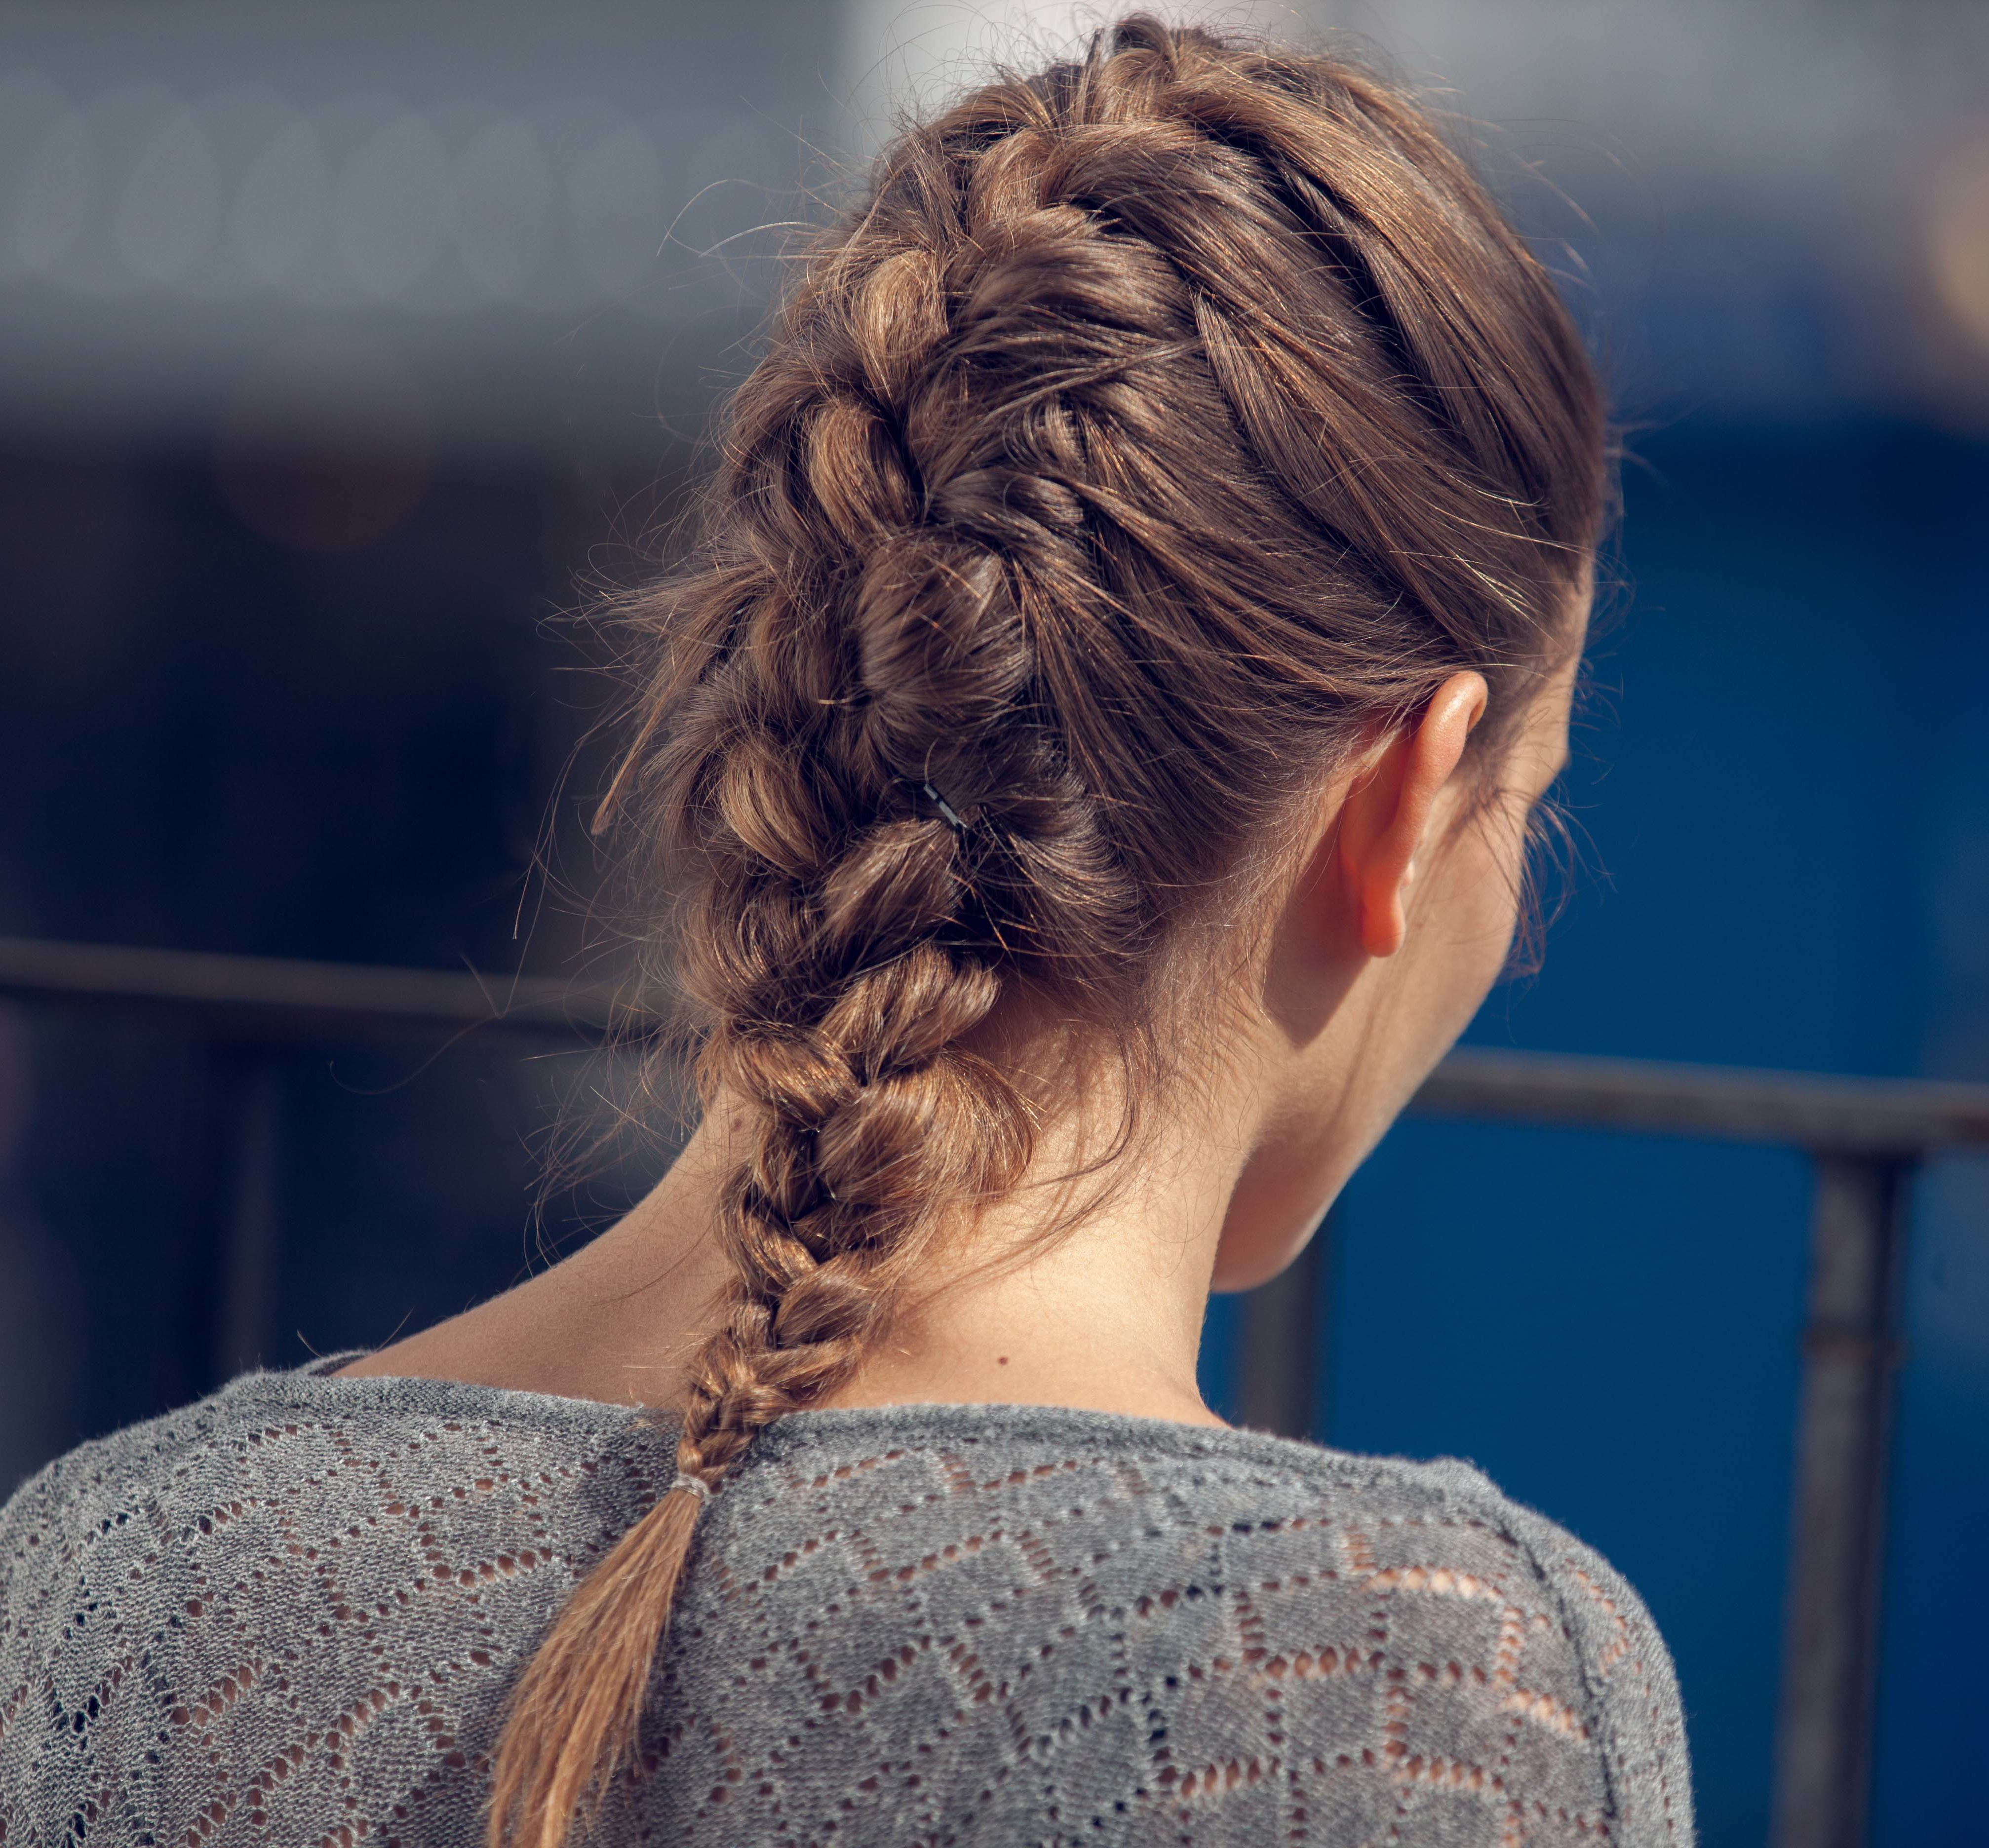 Recent Thick Two Side Fishtails Braid Hairstyles Regarding Hairstyles For Thick Hair: 4 Braided Hairstyles Your Mane (View 8 of 20)